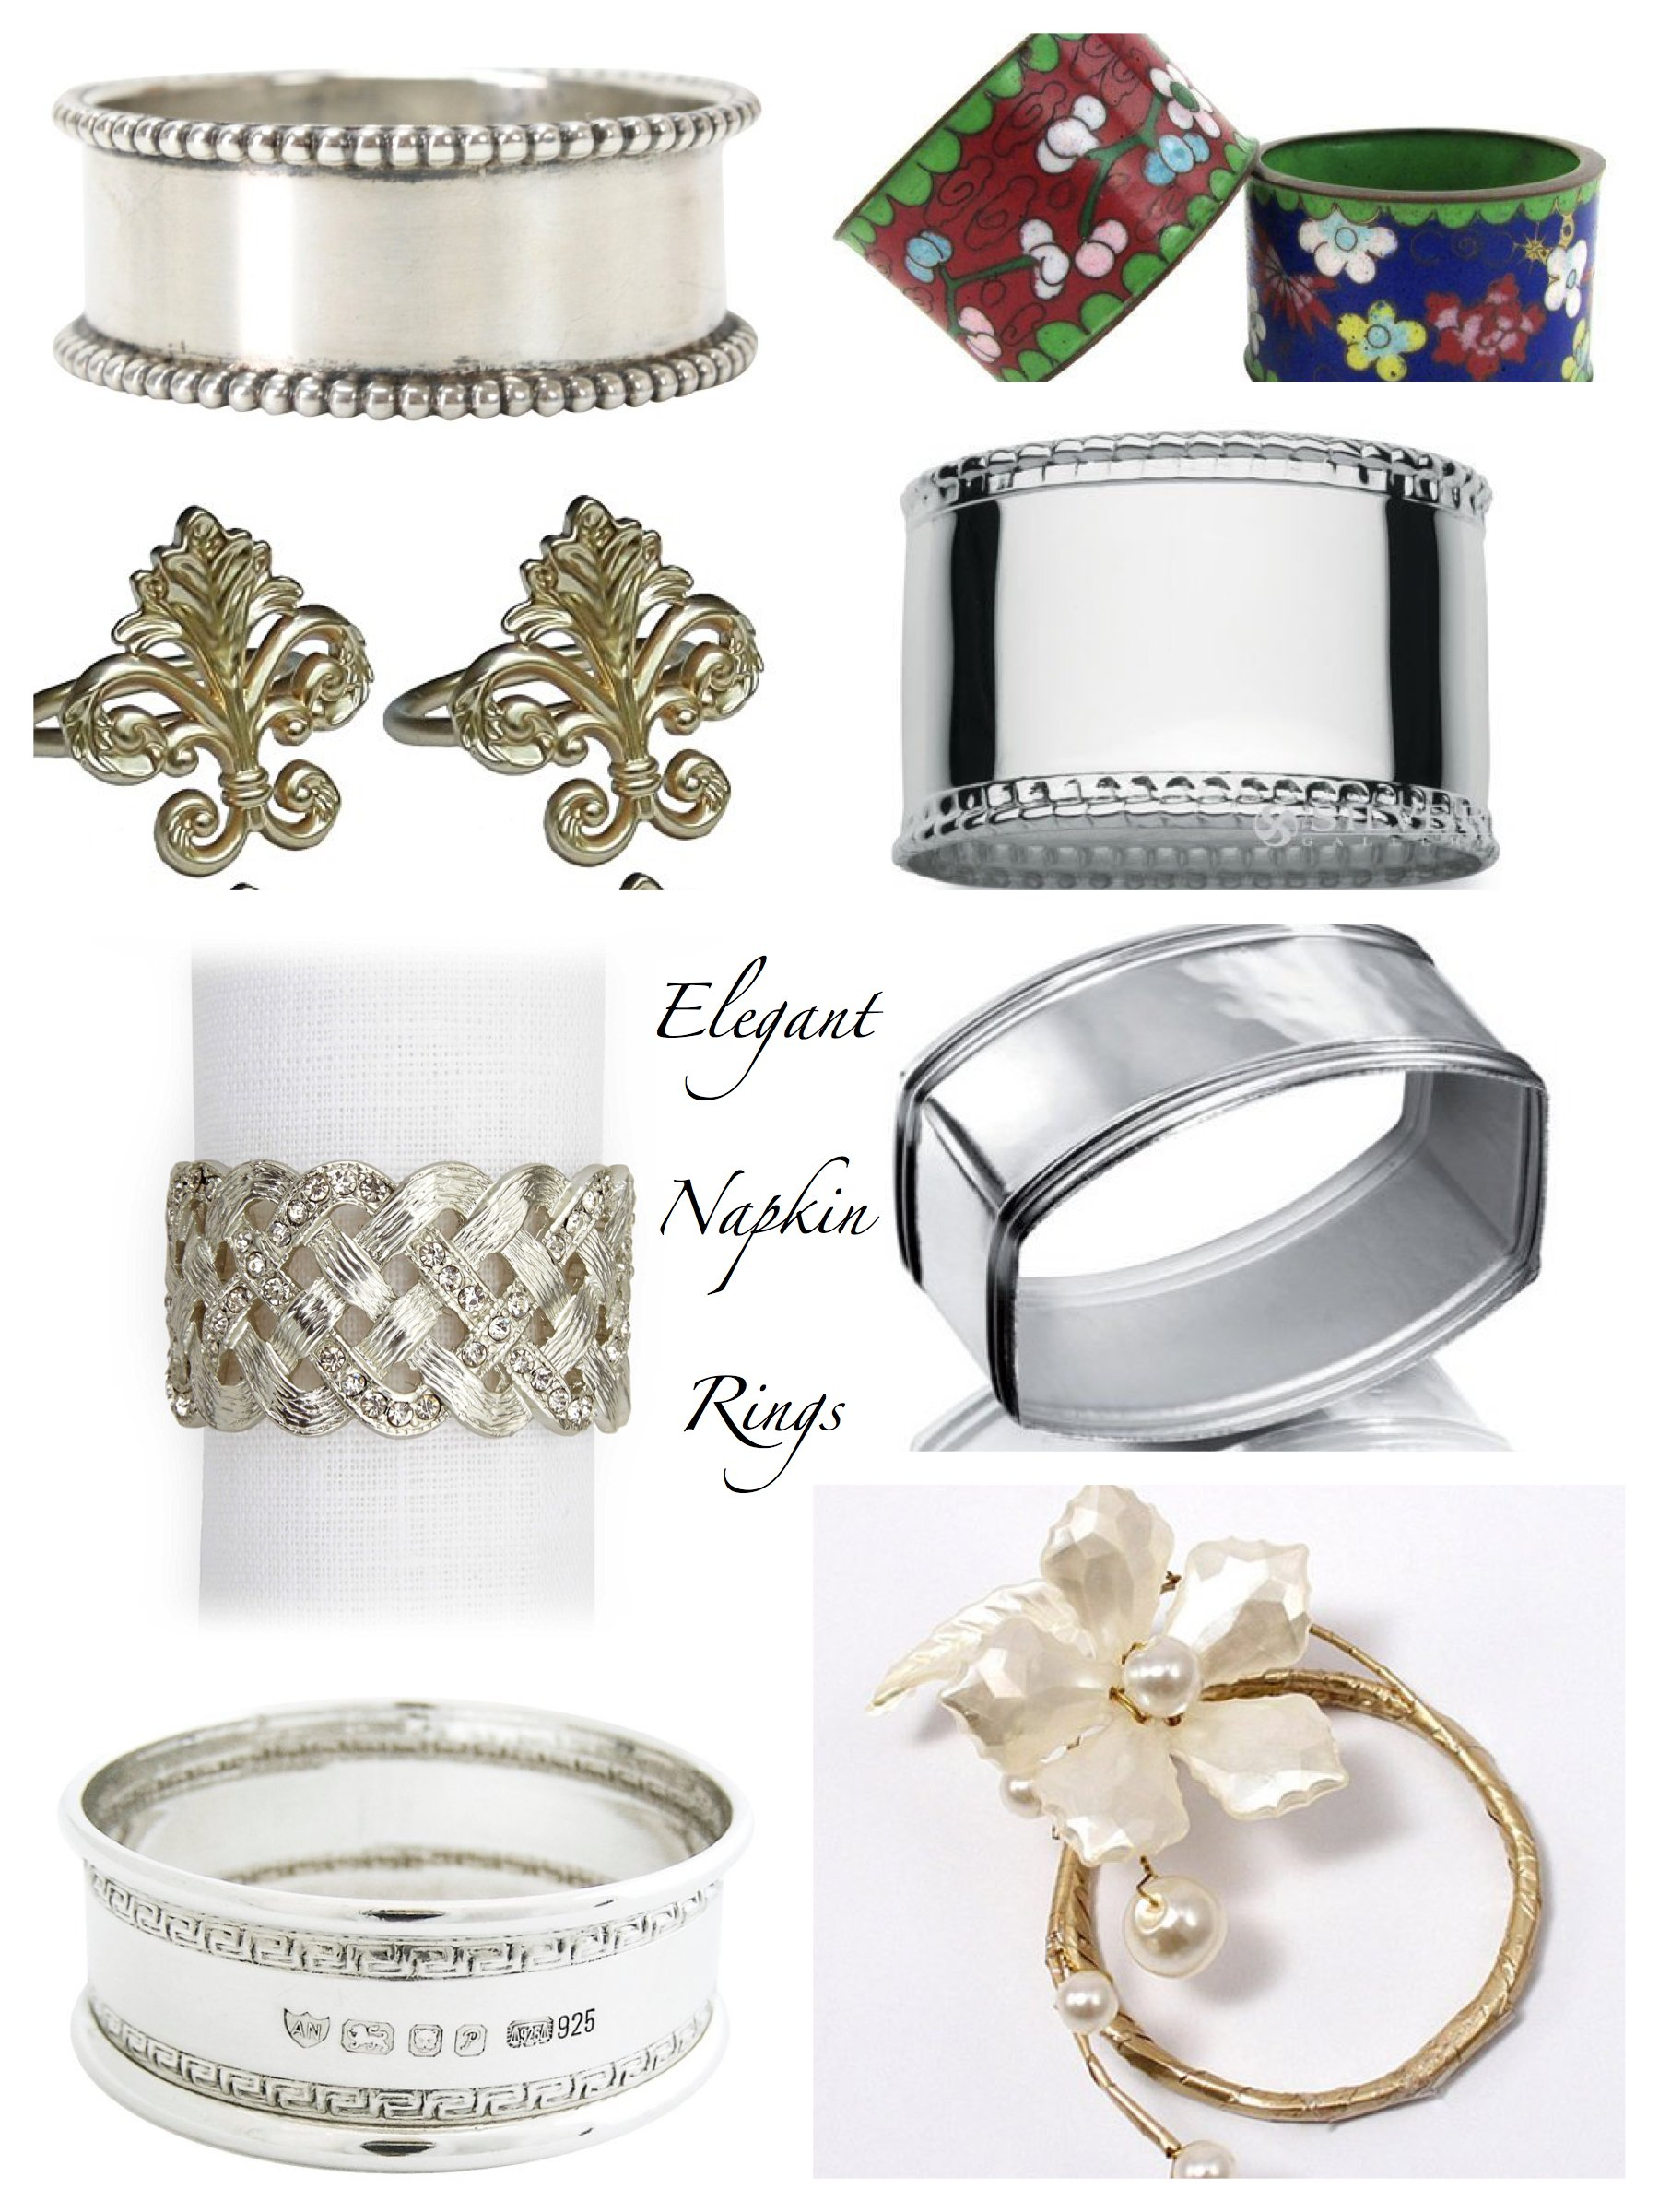 Classic Elegance Theme Party Planning Ideas Amp Supplies